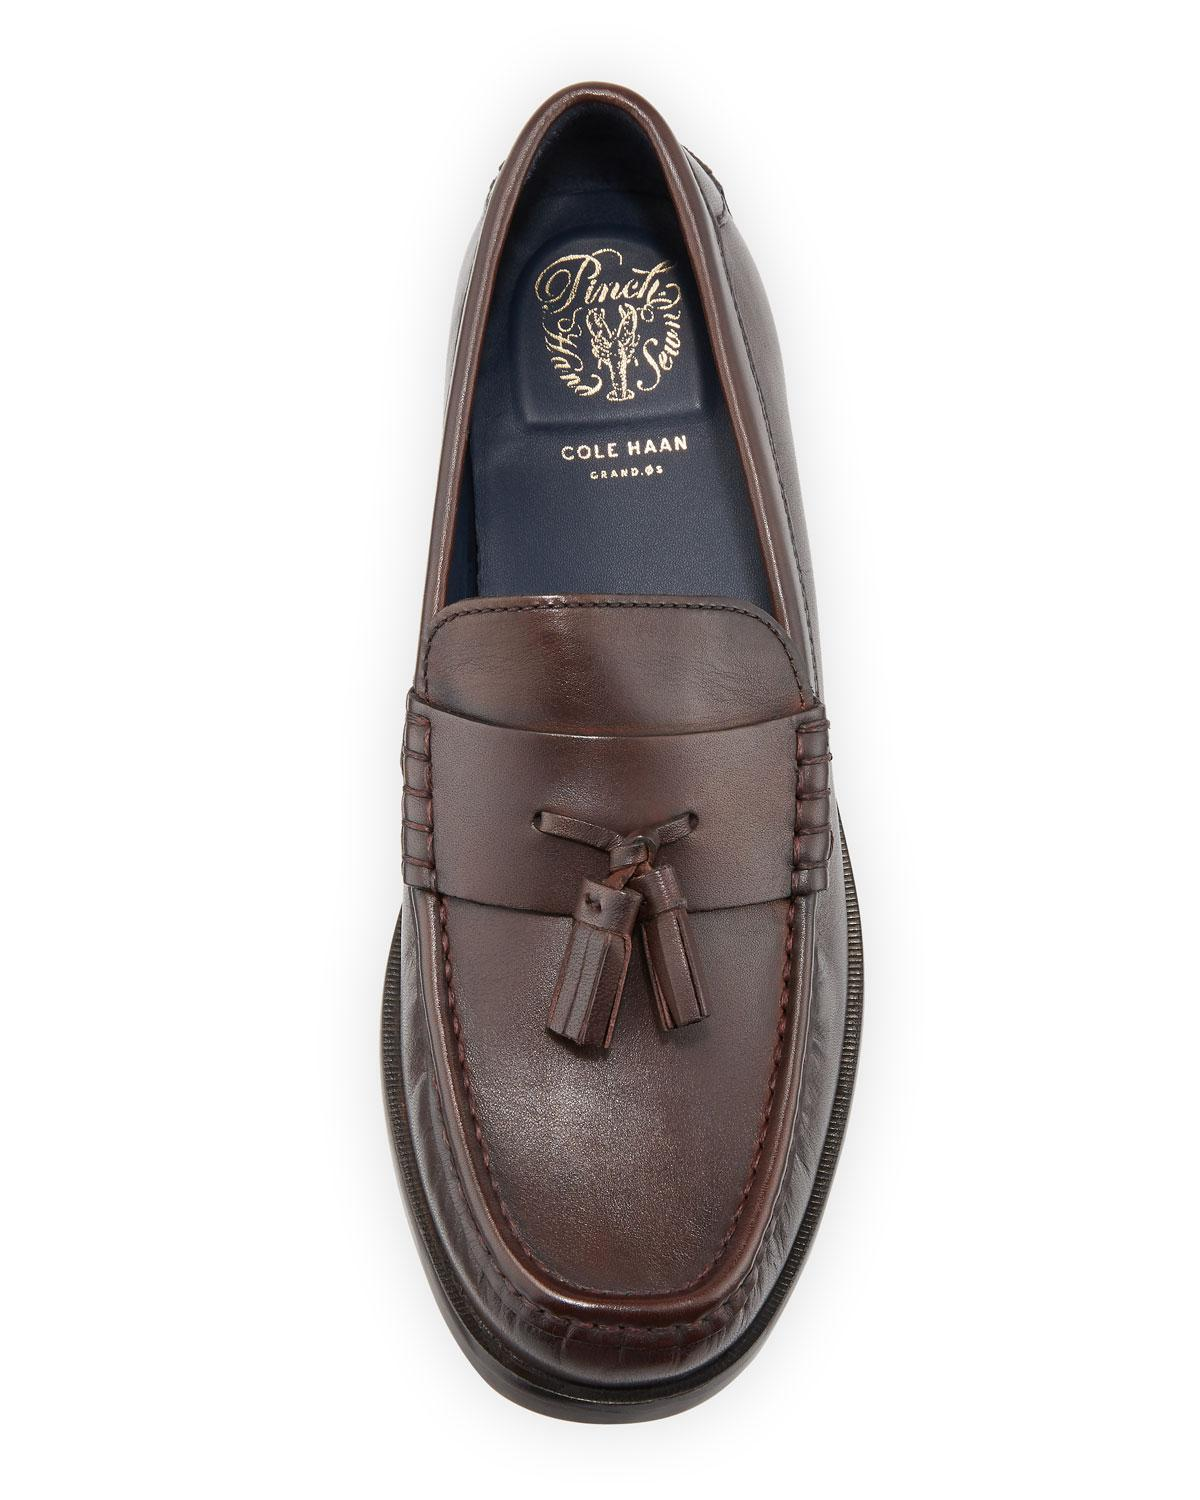 799db60a8fd Lyst - Cole Haan Men s Pinch Friday Tassel Loafers in Brown for Men